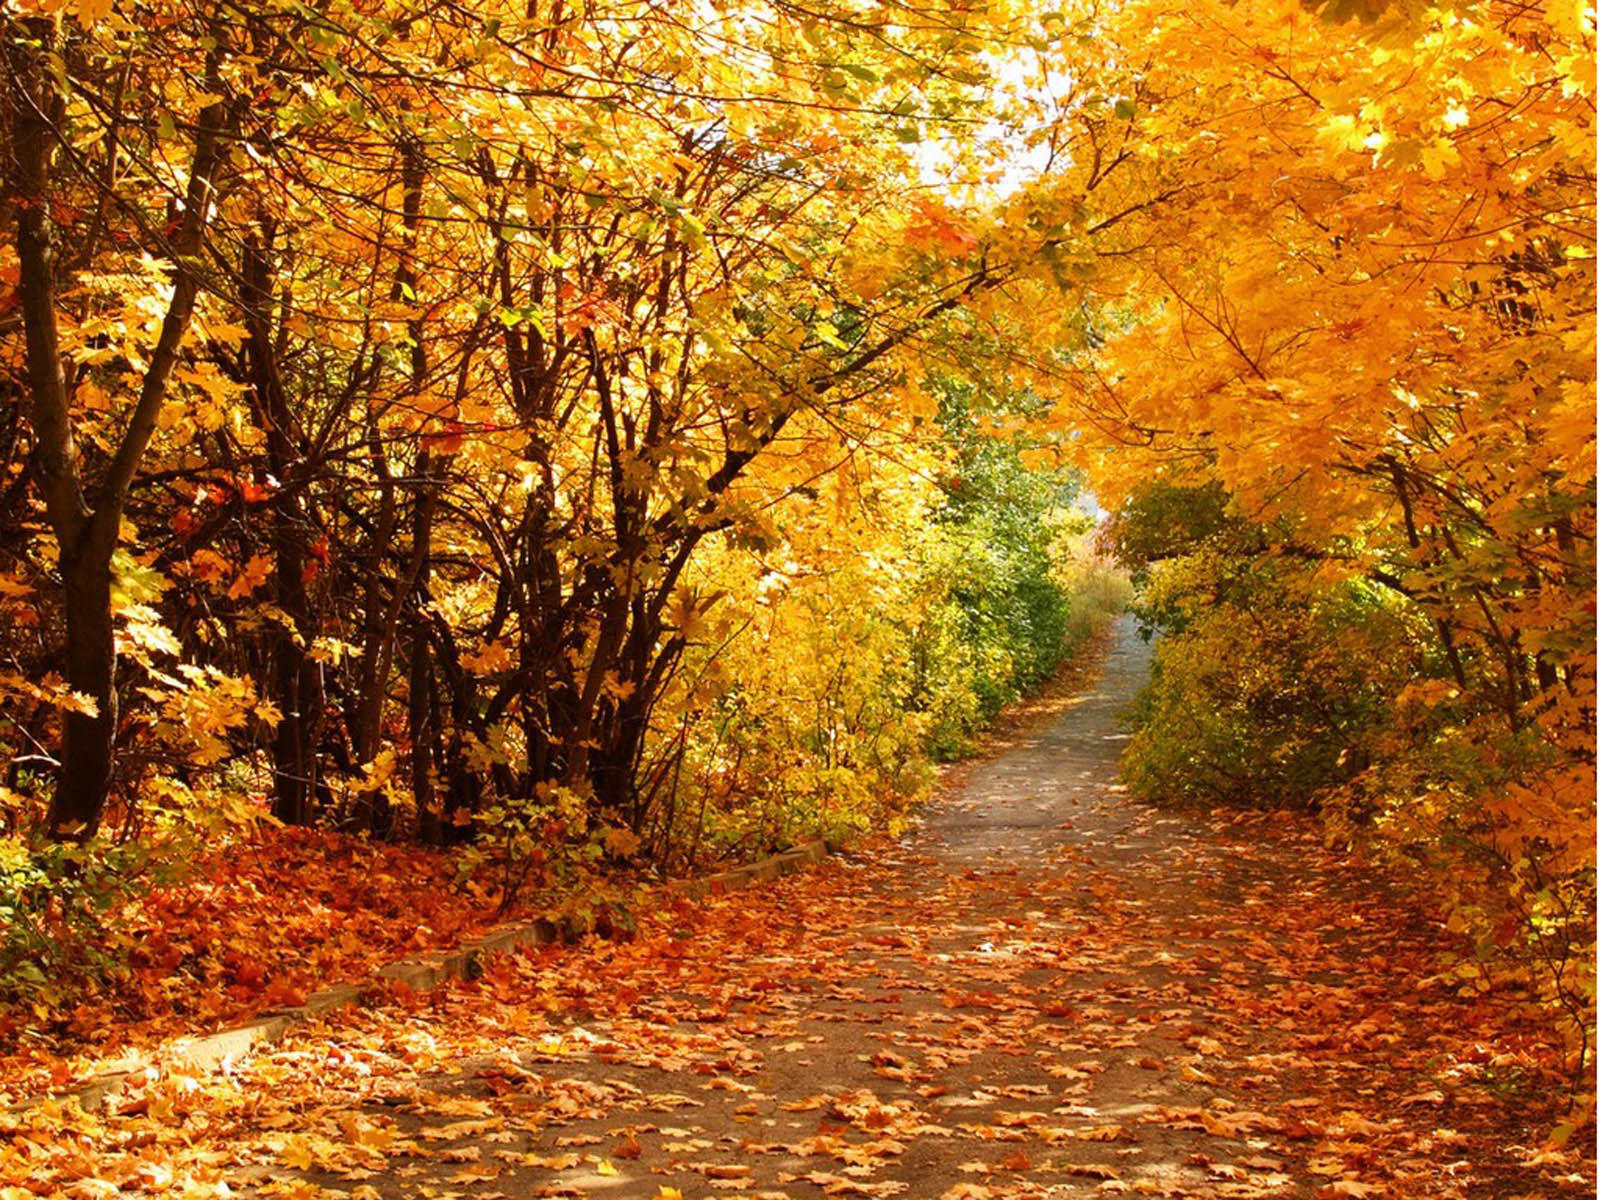 Beautiful Autumn Scenery Wallpapers Beautiful Autumn Scenery 1600x1200